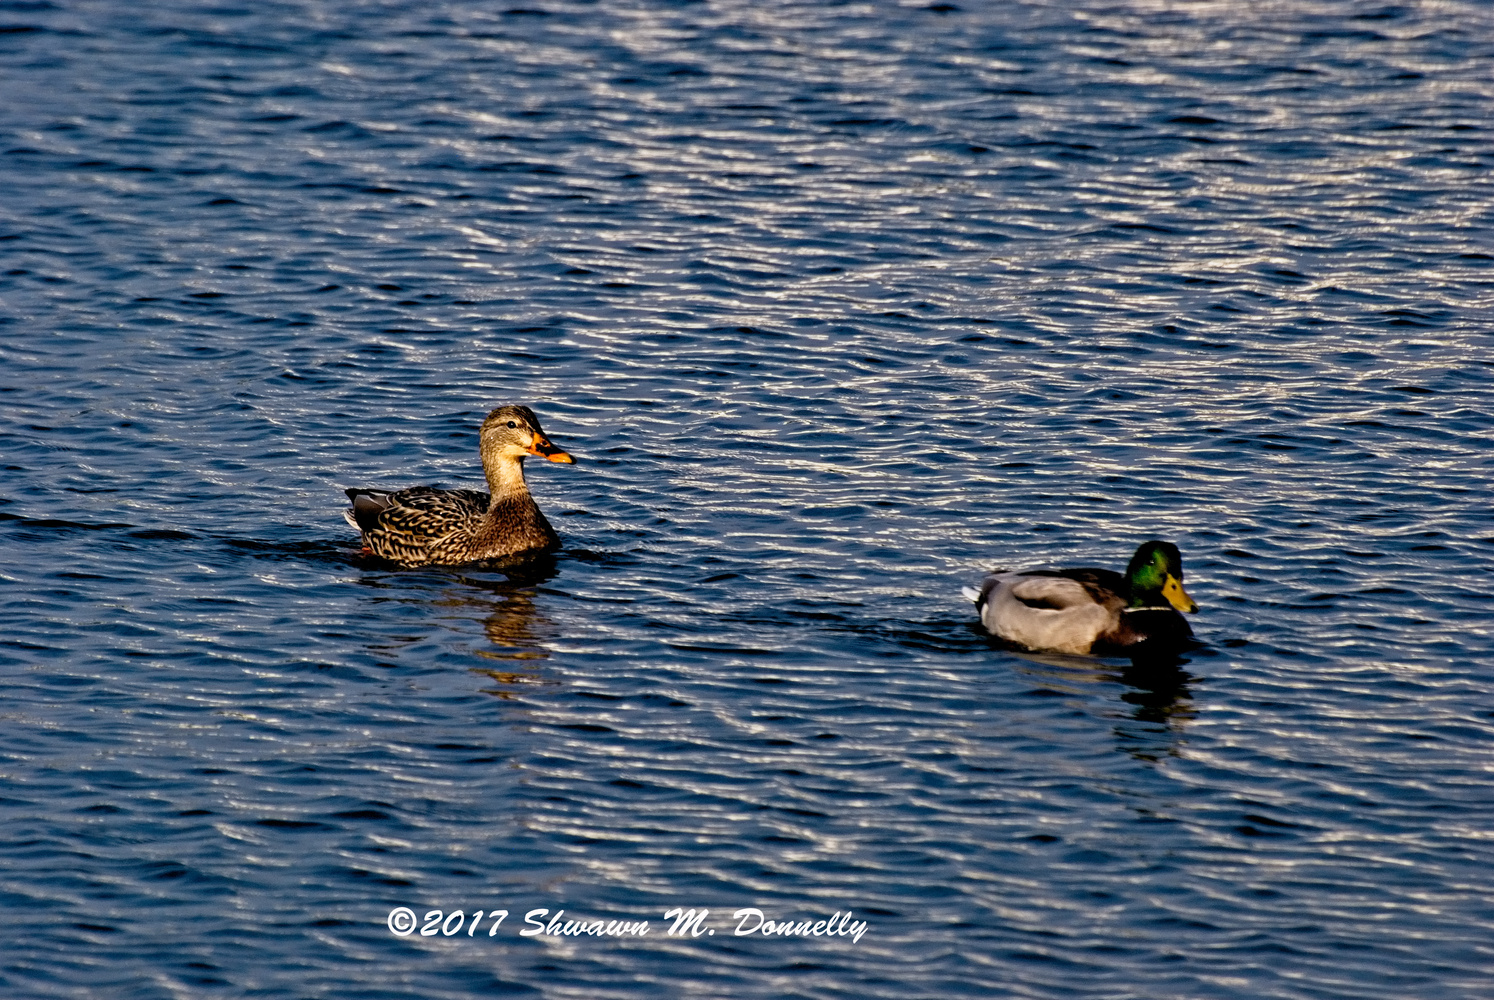 Get your ducks in a row. by Shawn Donnelly